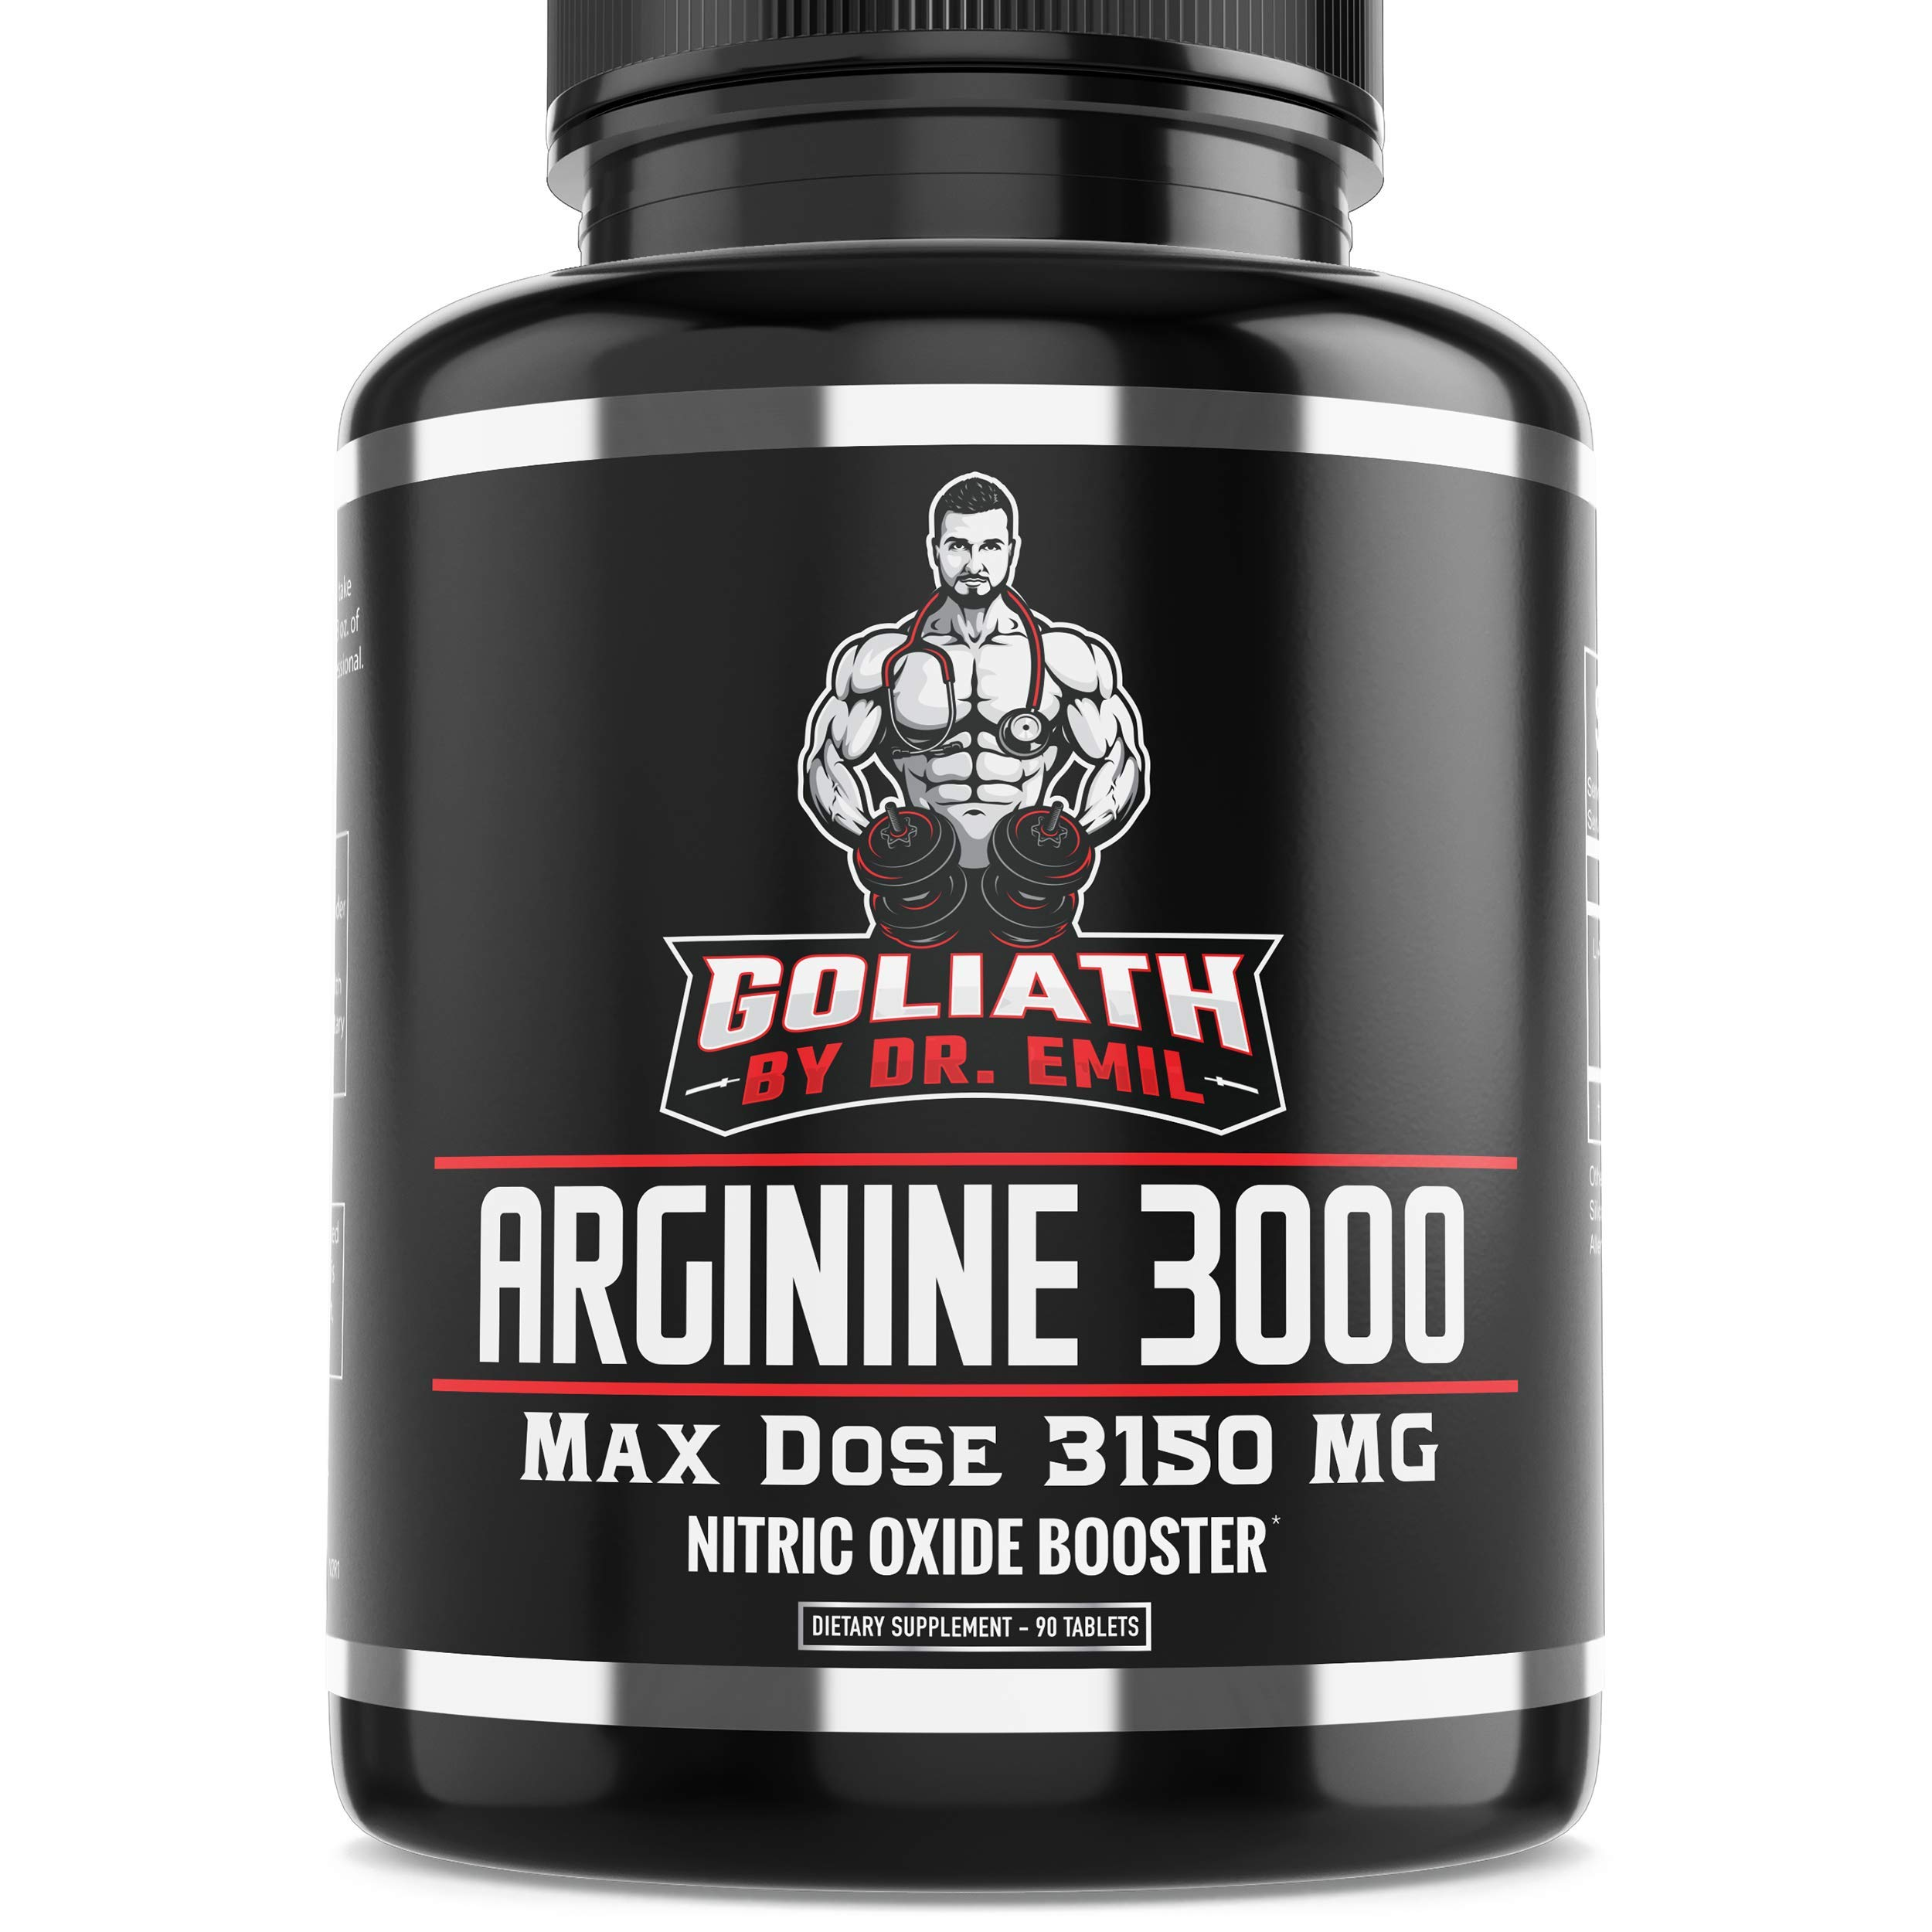 Dr. Emil - L Arginine (3150mg) Highest Pill Dosage - Nitric Oxide Supplement for Muscle Growth, Vascularity, Endurance & Heart Health (Arginine AKG & HCL)